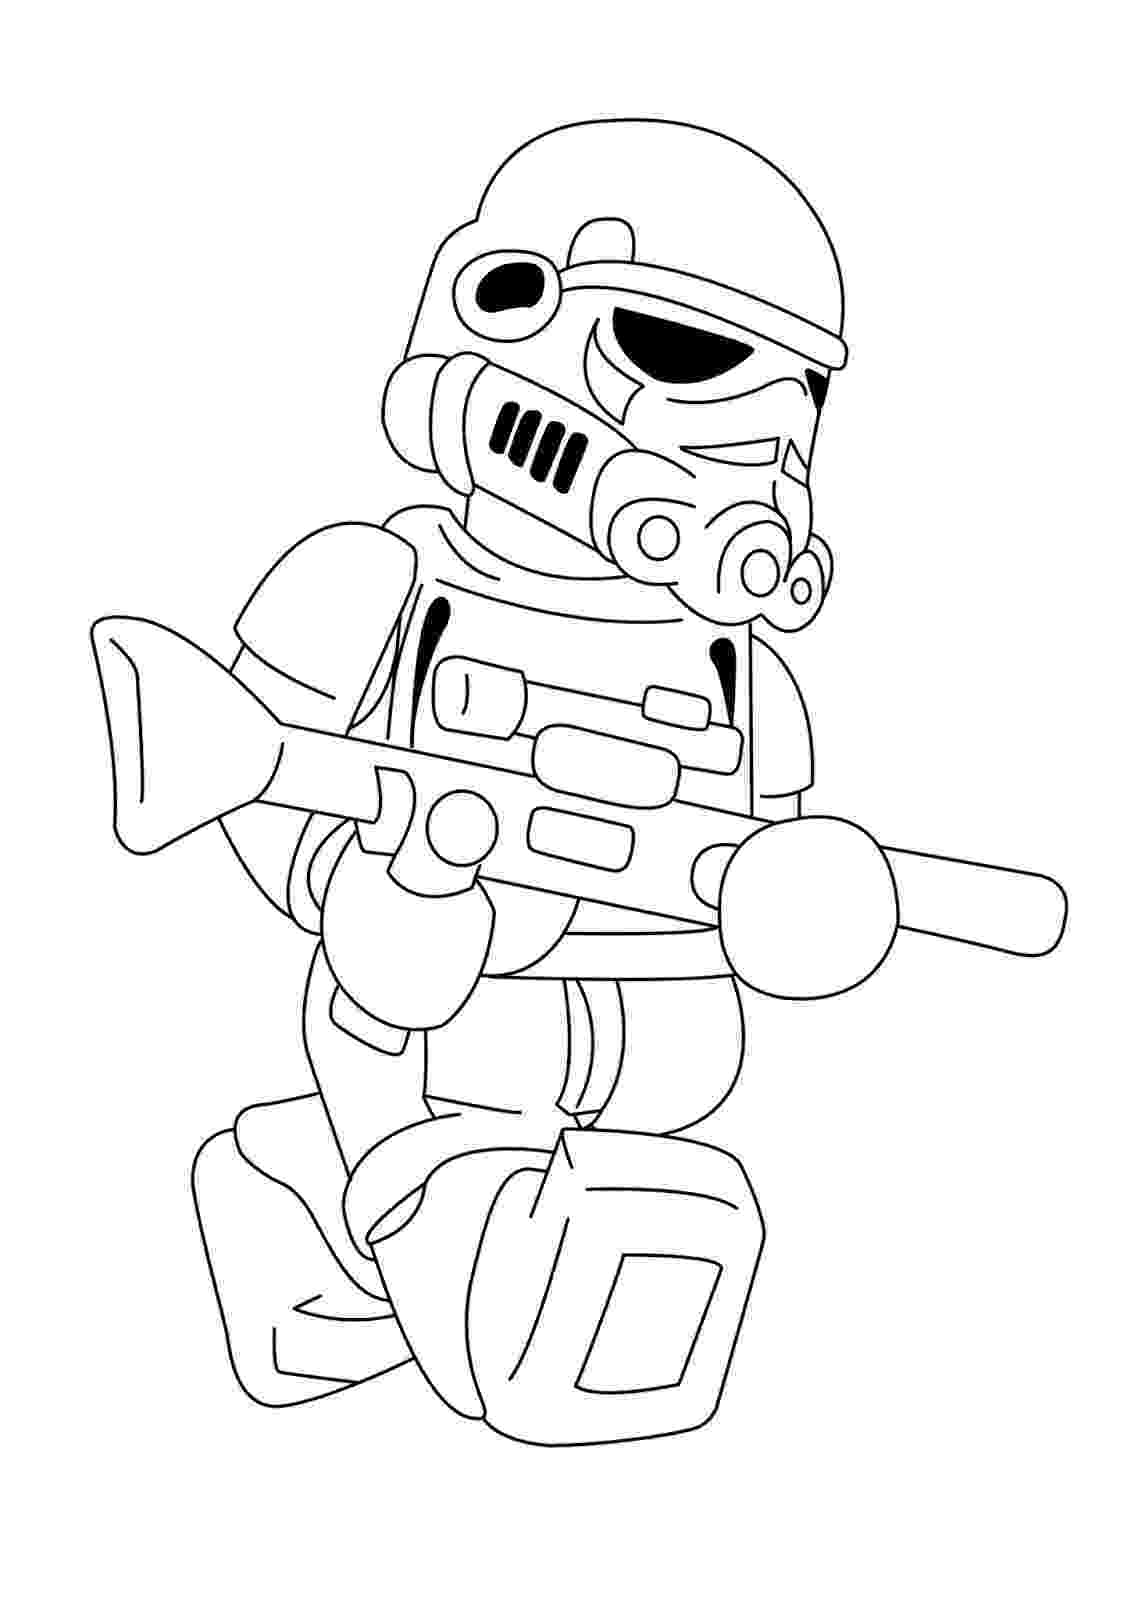 colouring pages lego star wars lego star wars coloring pages best coloring pages for kids lego pages star colouring wars